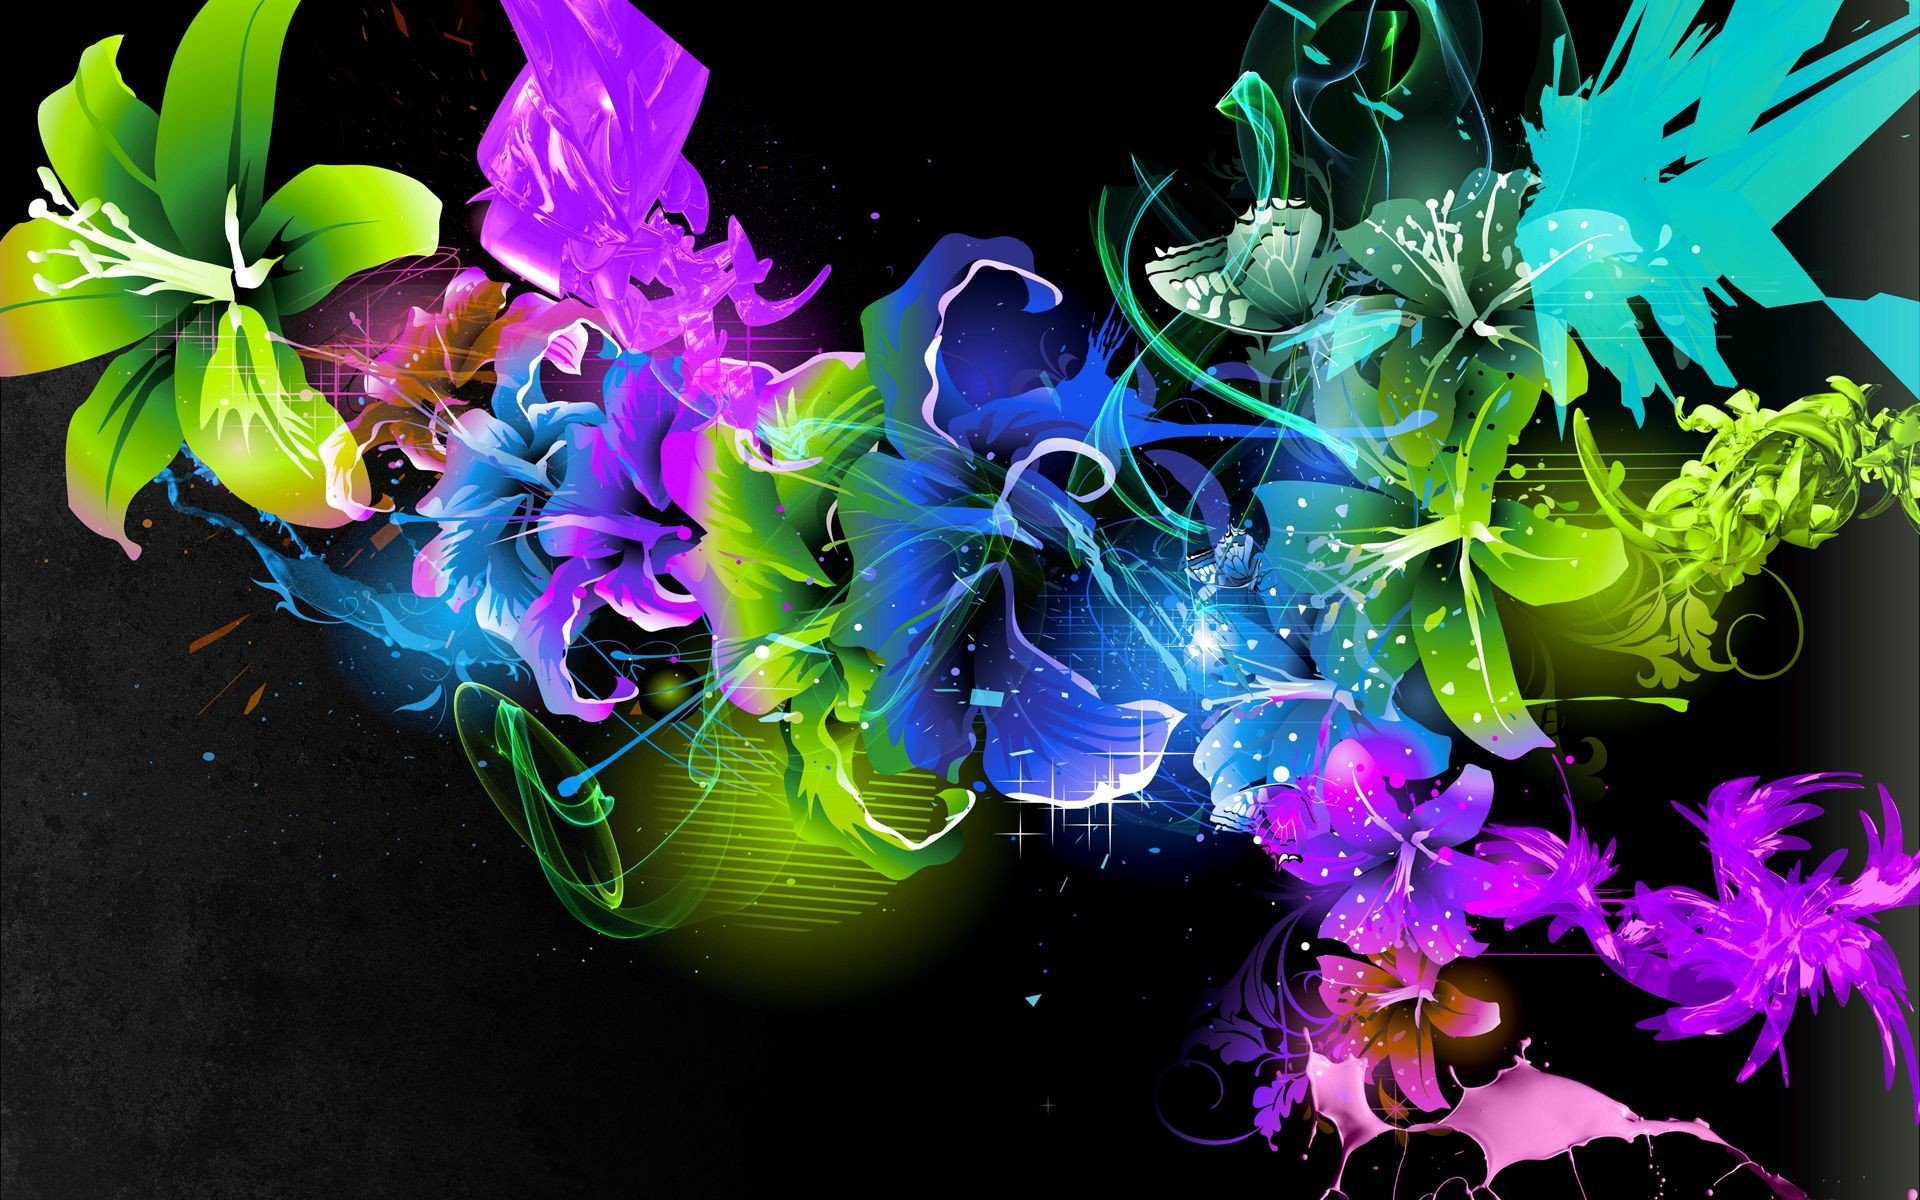 Abstract Color Art Wallpaper HD 1920x1200